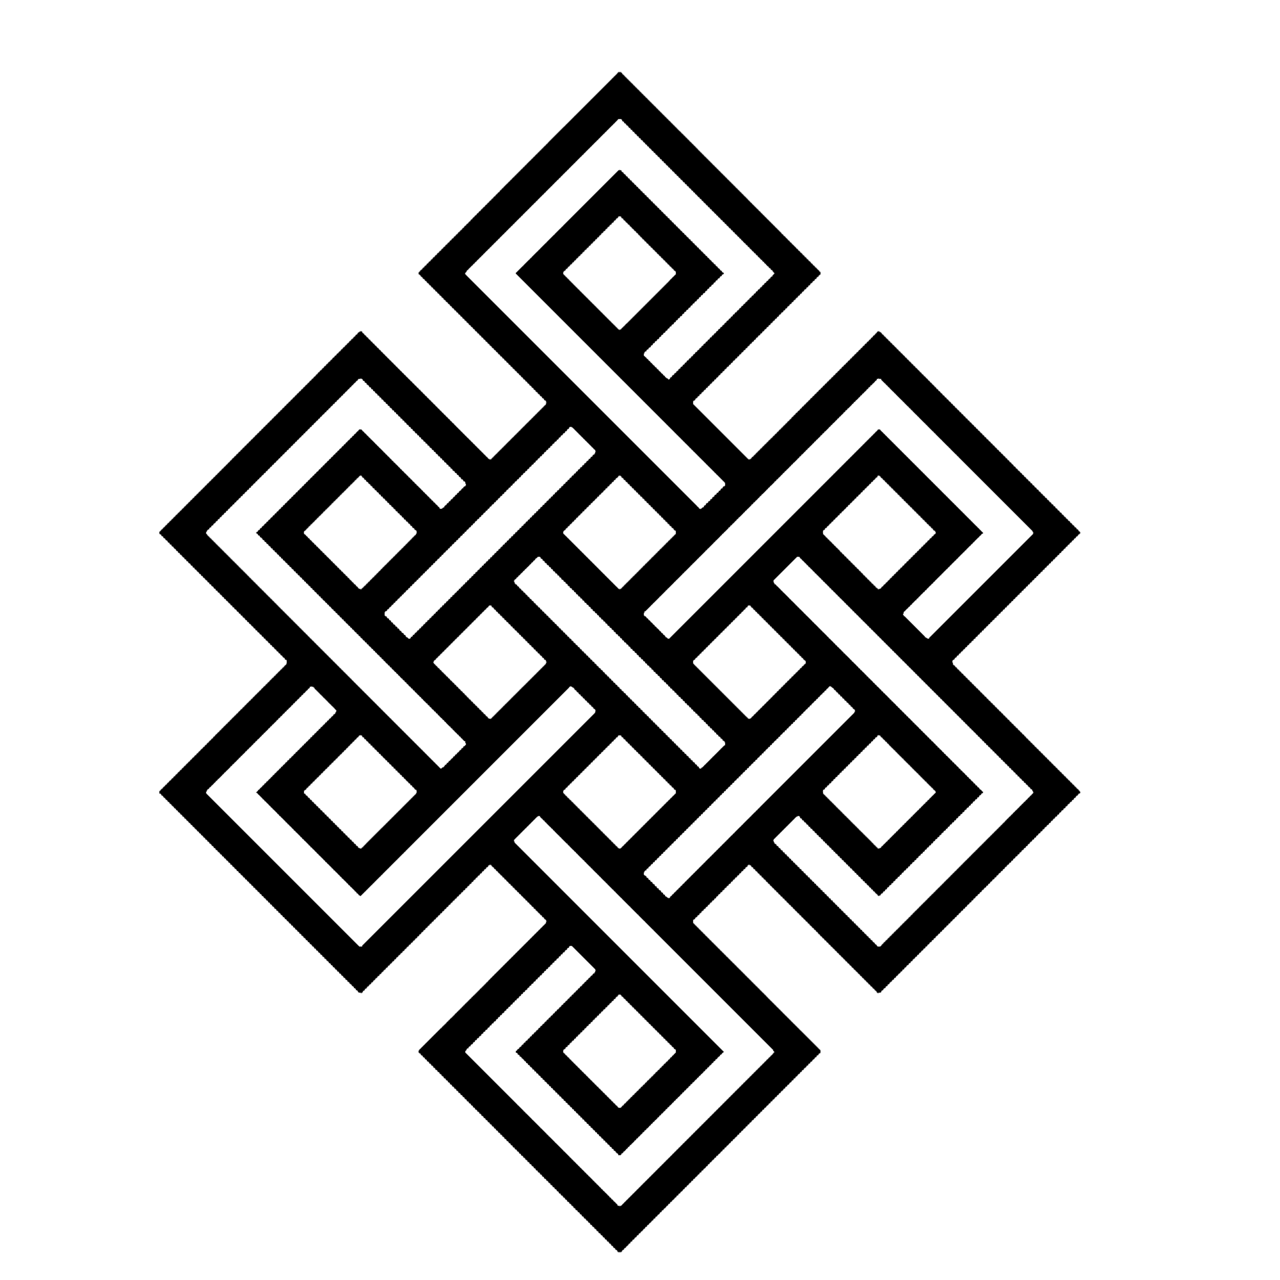 Dopatonin the endless knot one of the eight sacred emblems of dopatonin the endless knot one of the eight sacred emblems of tibetan buddhism biocorpaavc Gallery